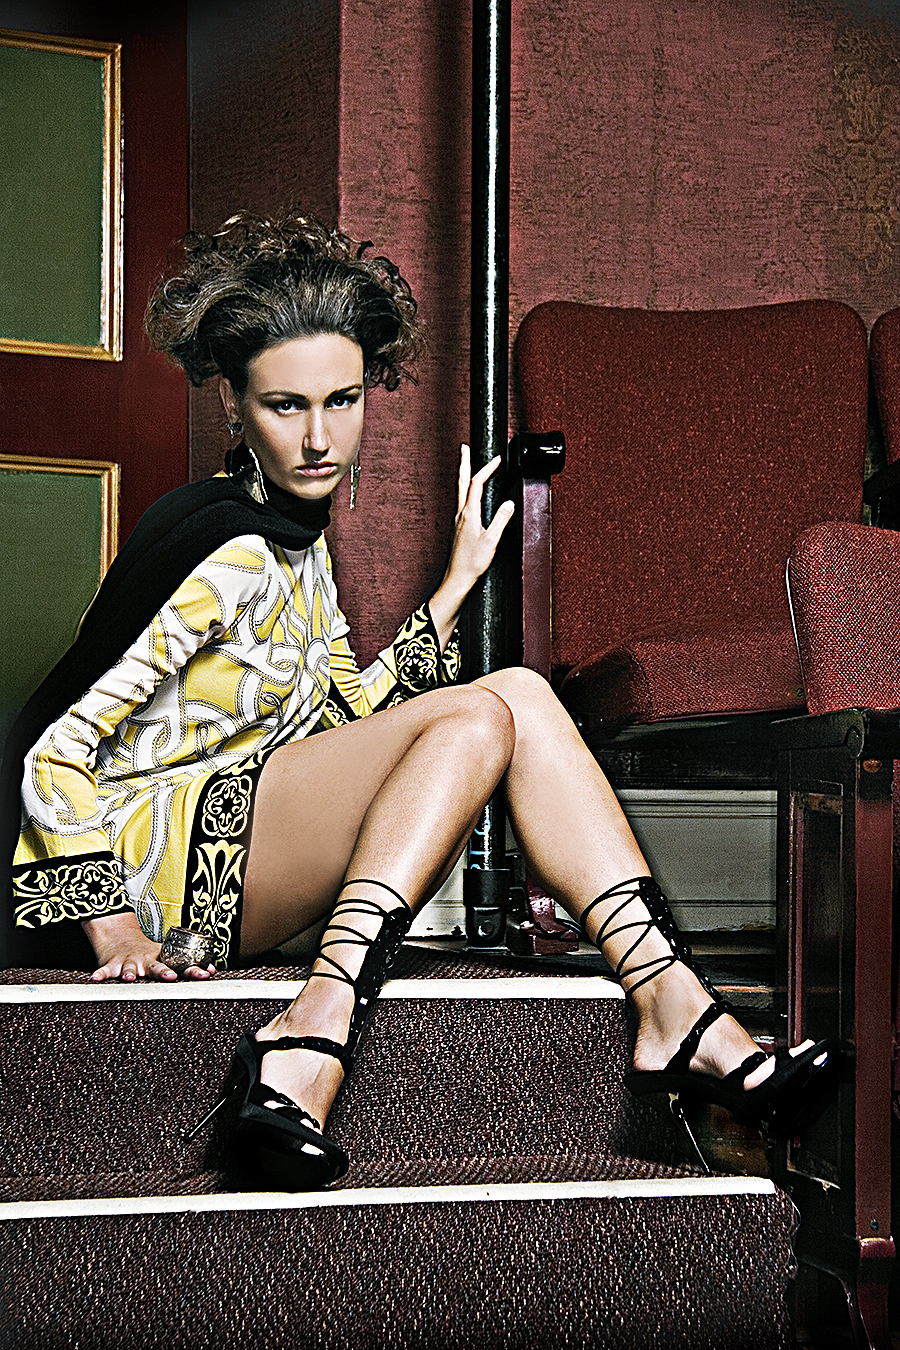 Tony_Ward_fashion_shoot_vintage_Versace_theater_setting_stylish_hair_heels_earrings